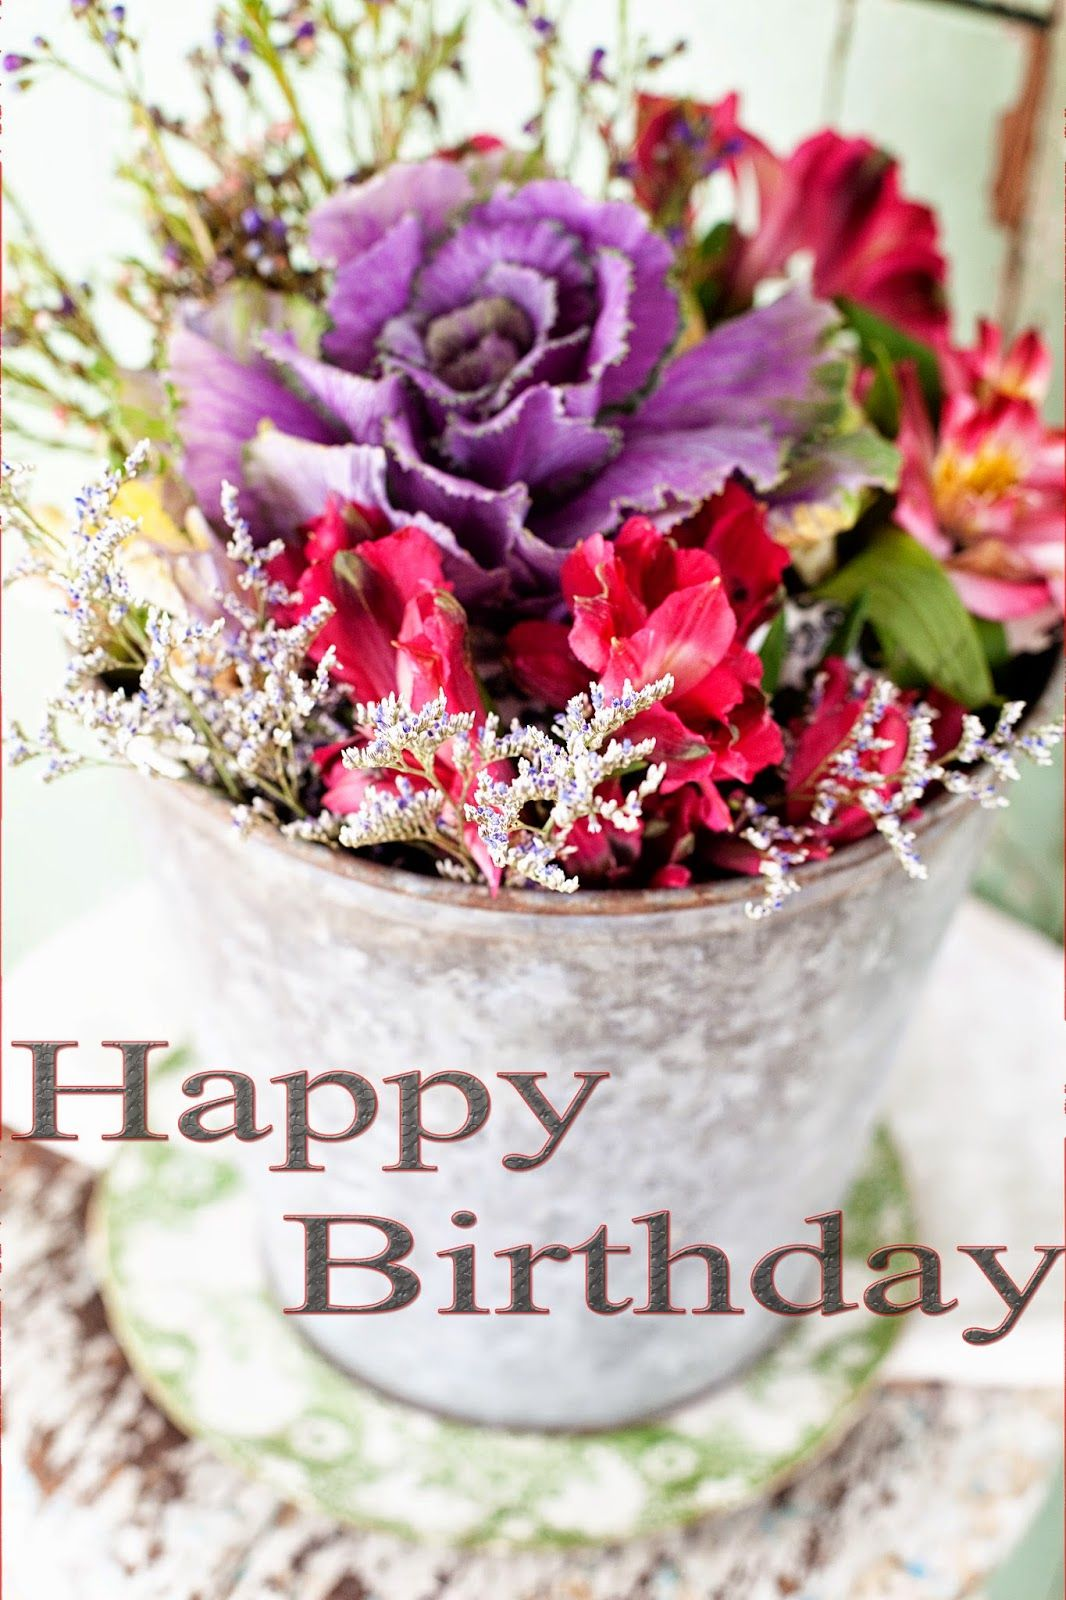 Happy Birthday Flowers Images Wishes Pinterest Flower Images